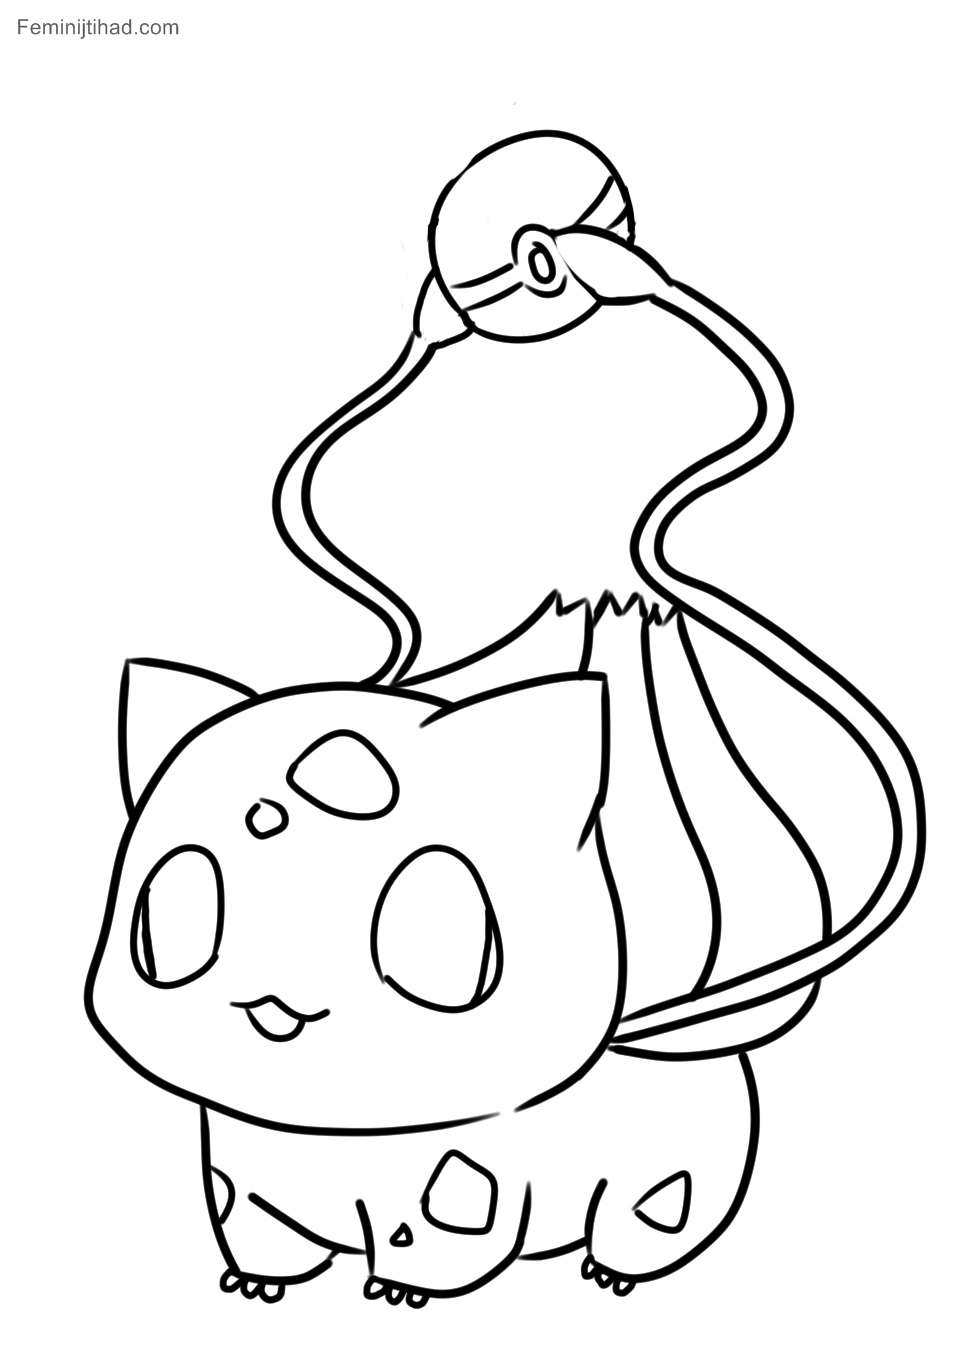 961x1368 Pokemon Coloring Pages To Print